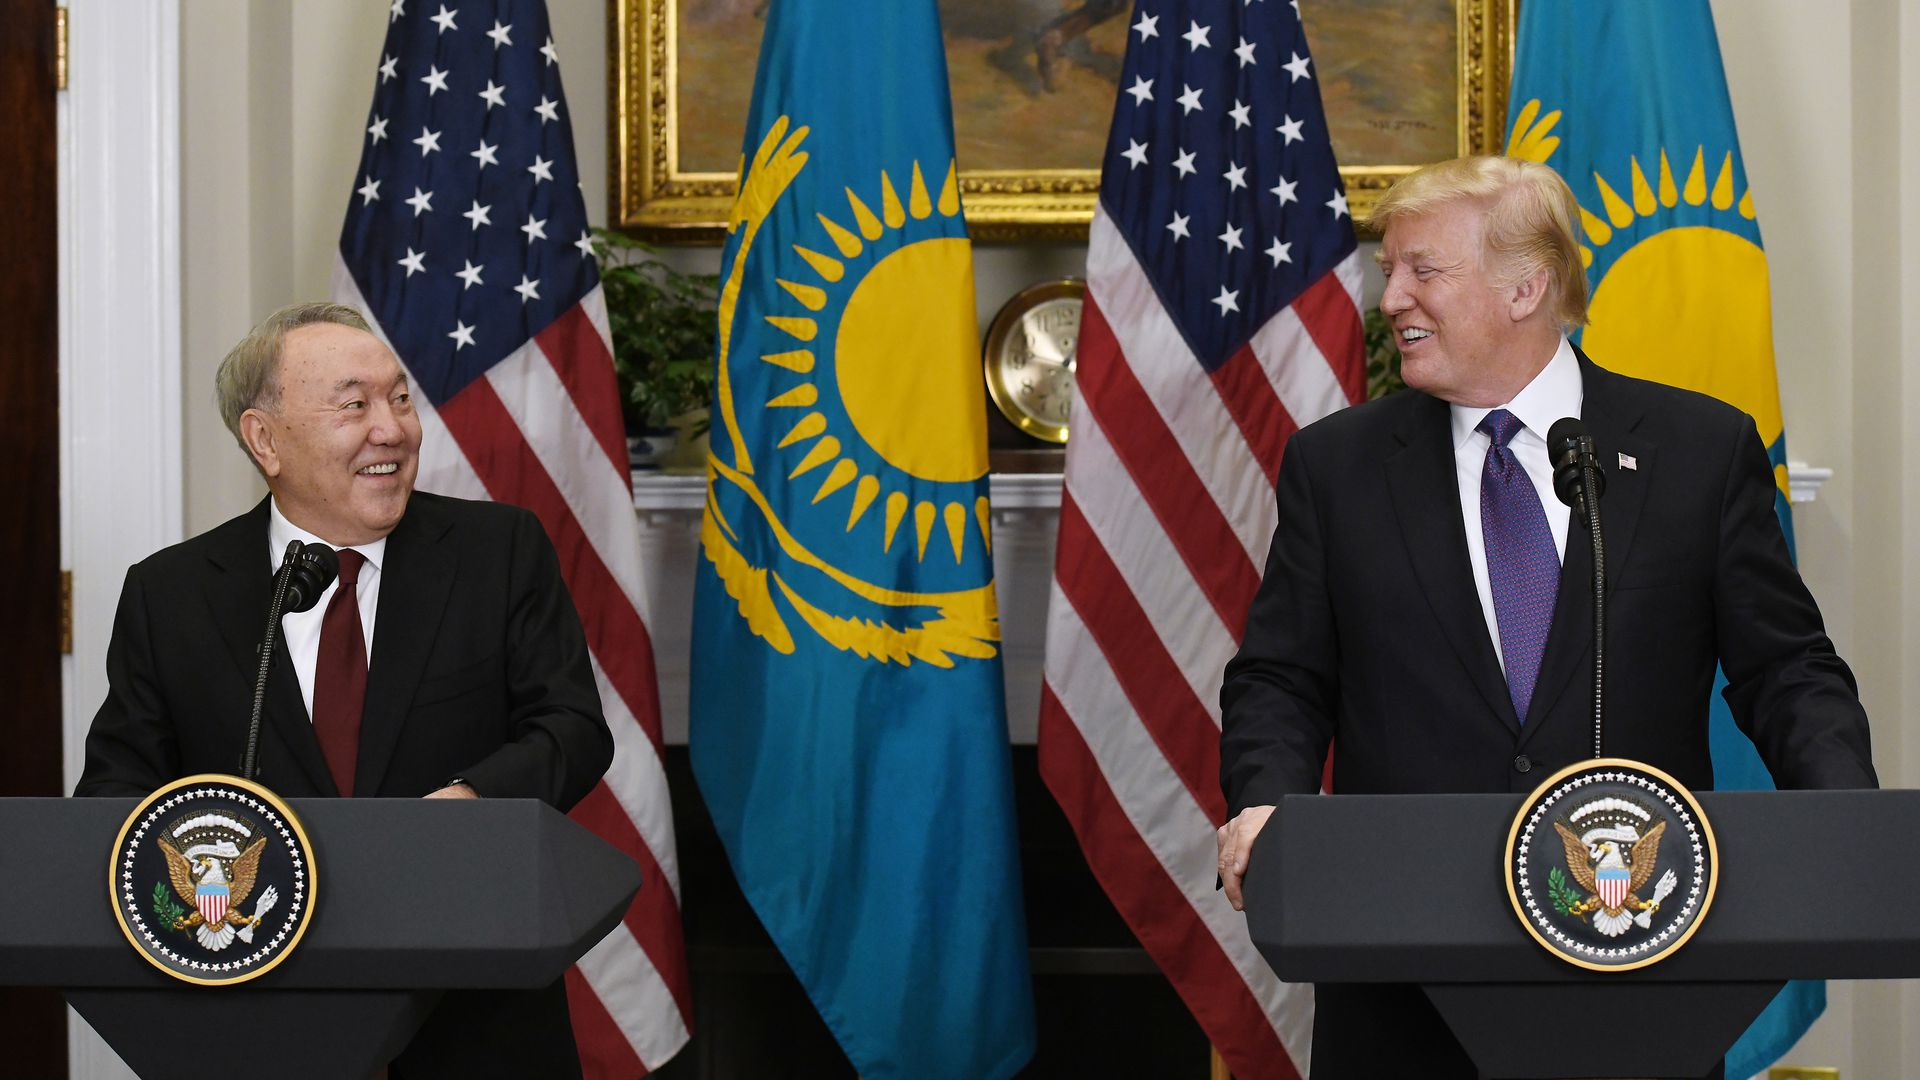 U.S. President Donald Trump and President Nursultan Nazarbayev of Kazakhstan hold a joint press conference.